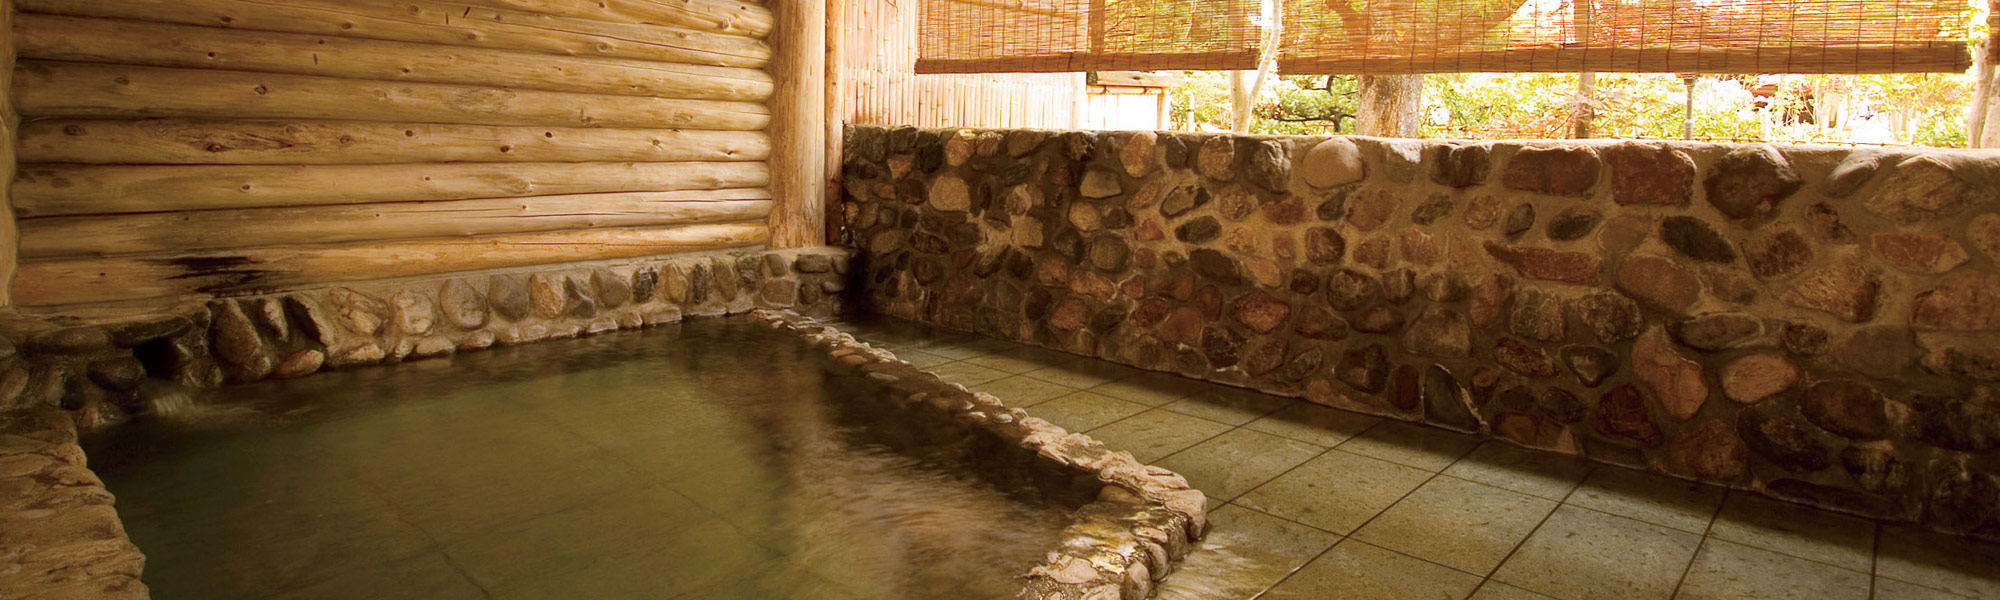 Ochiai Hot Springs